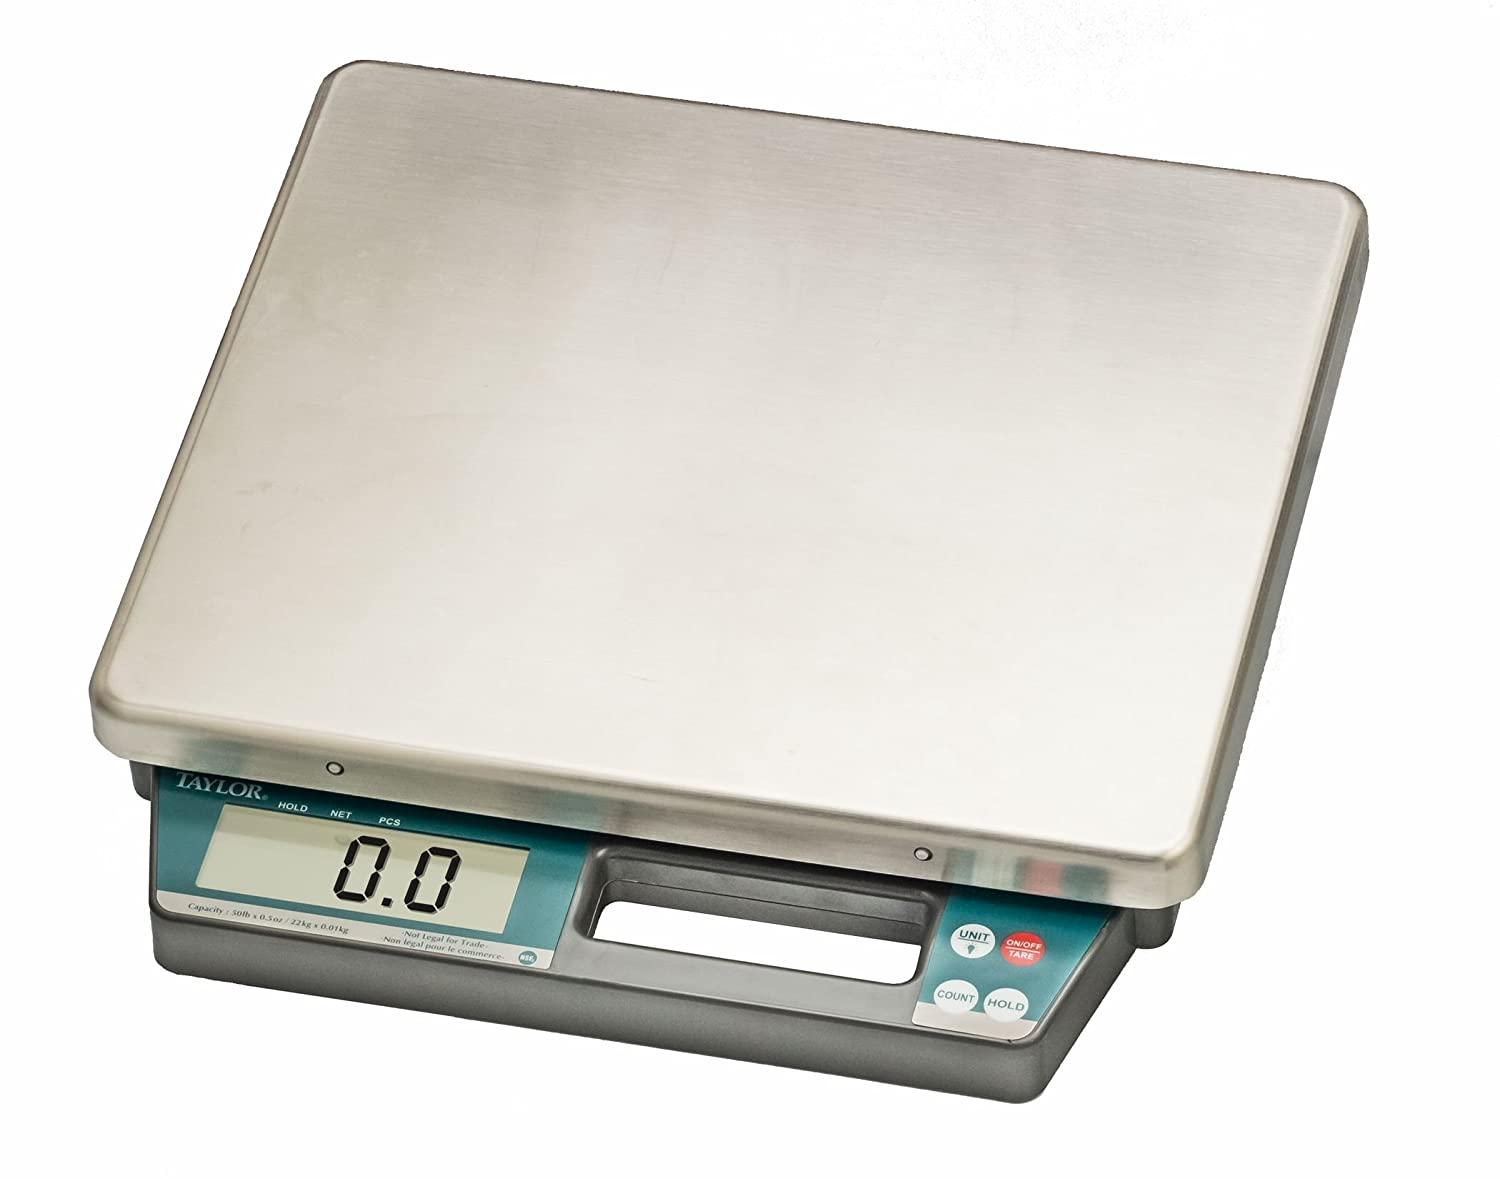 Taylor Precision Products - TE50 Digital Portion Control Scale (